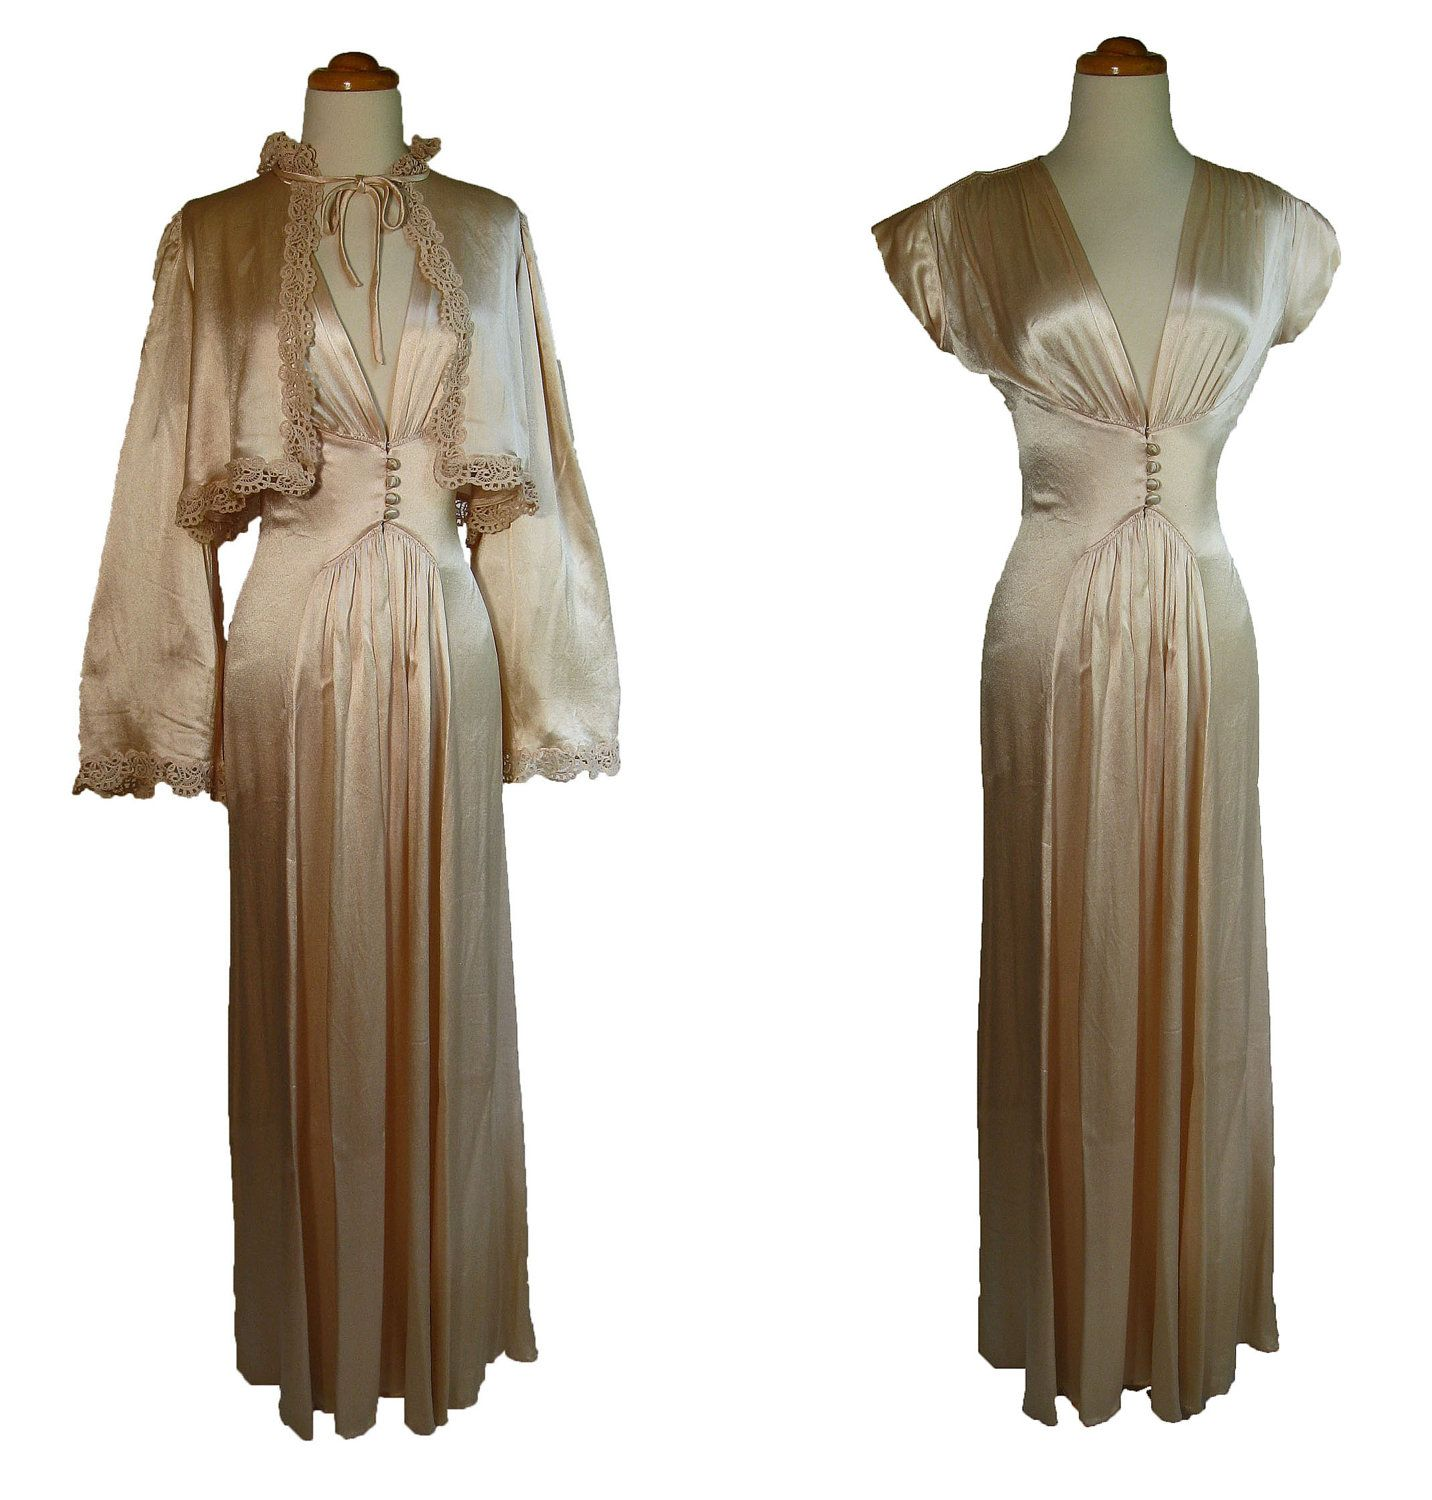 547c4c871 Late 1930s Early 1940s Silk PEIGNOIR SET. Vintage Charmeuse Silk and Lace  Bed Jacket and Nightgown. Peach Pink Hollywood Glamor.